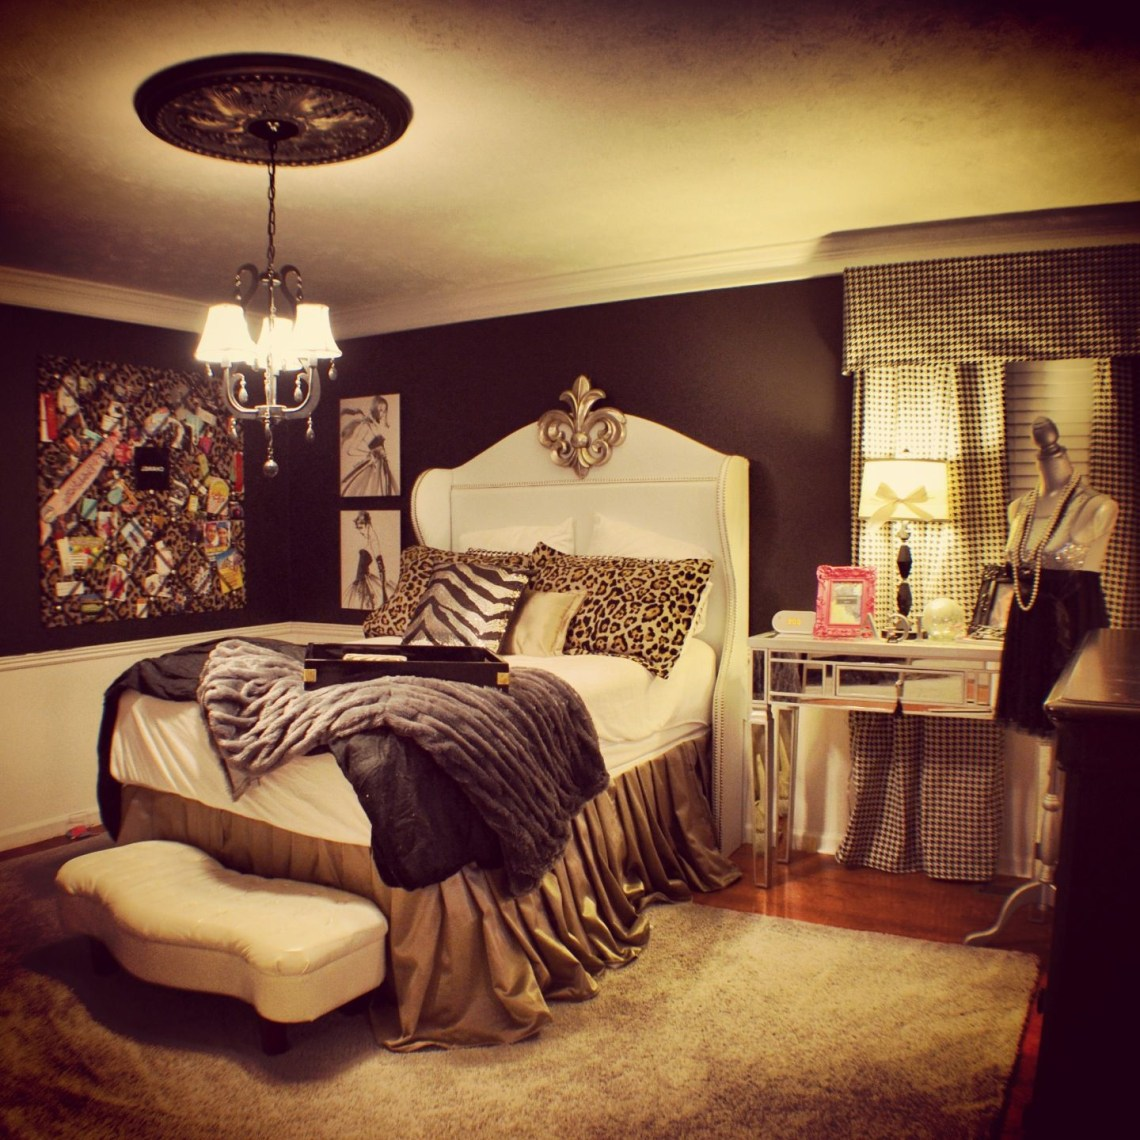 Irelands Chanel Themed Bedroom With Houndstooth Curtains